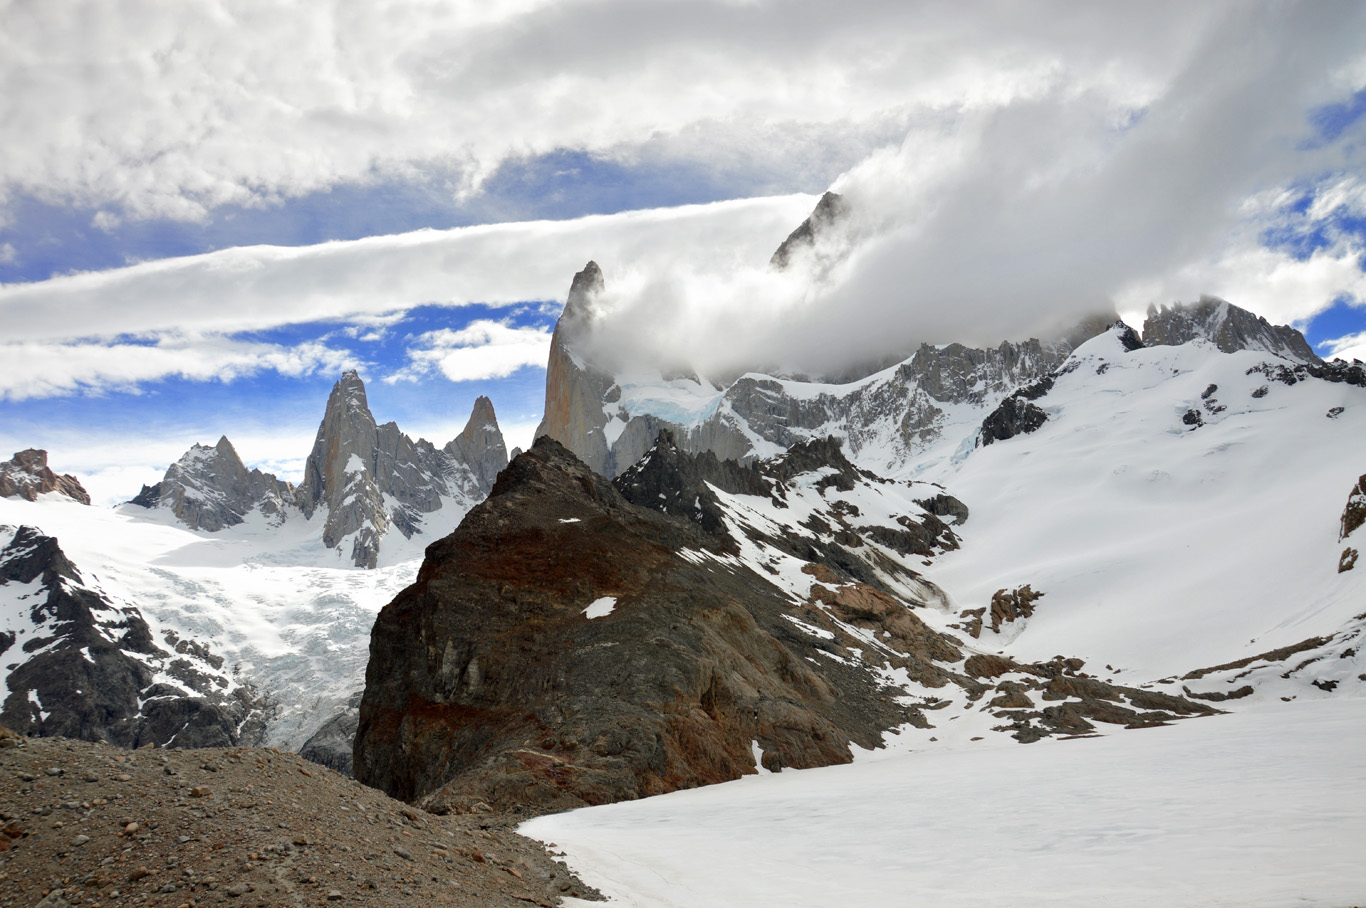 View from the frozen Laguna de los Tres (number 7 on the map)